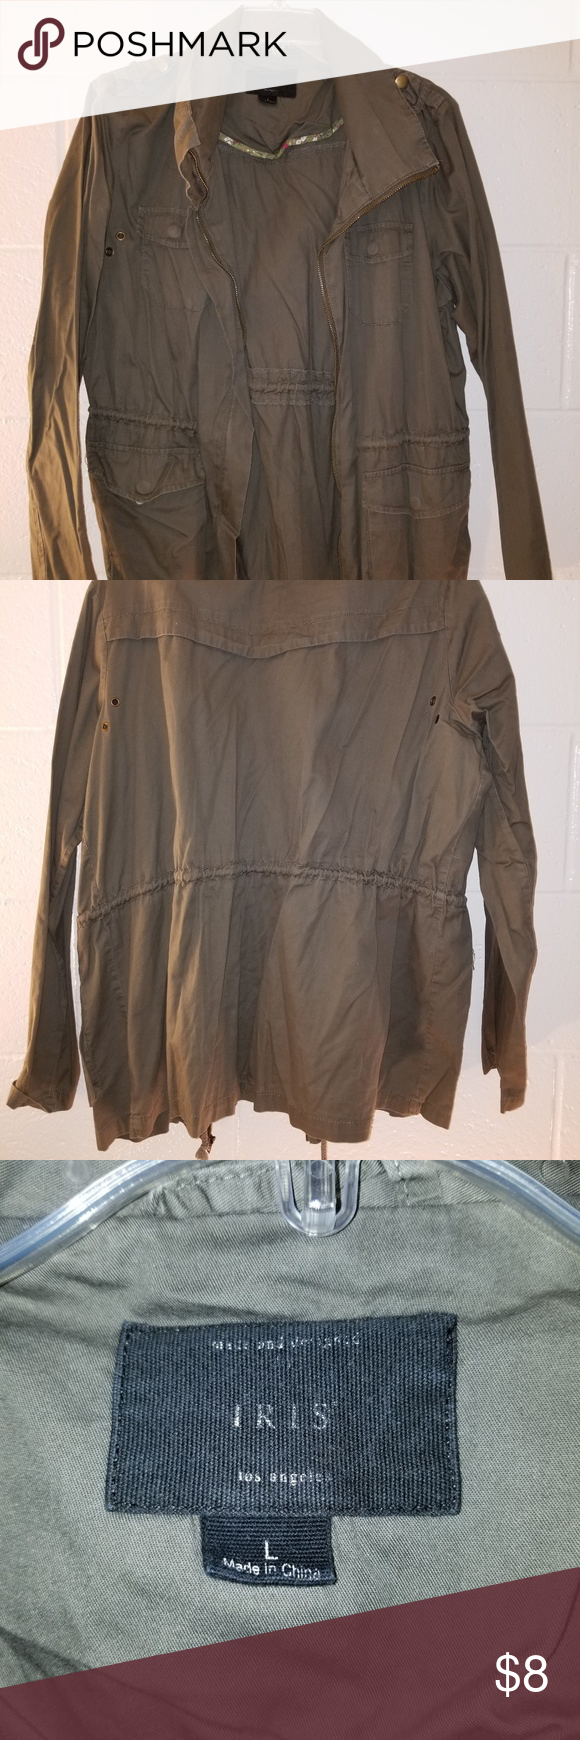 cc0cff56c27e Olive Stringed Coat From IRIS L.A. Fits like a Medium Condition  8 10 iris  Jackets   Coats Utility Jackets